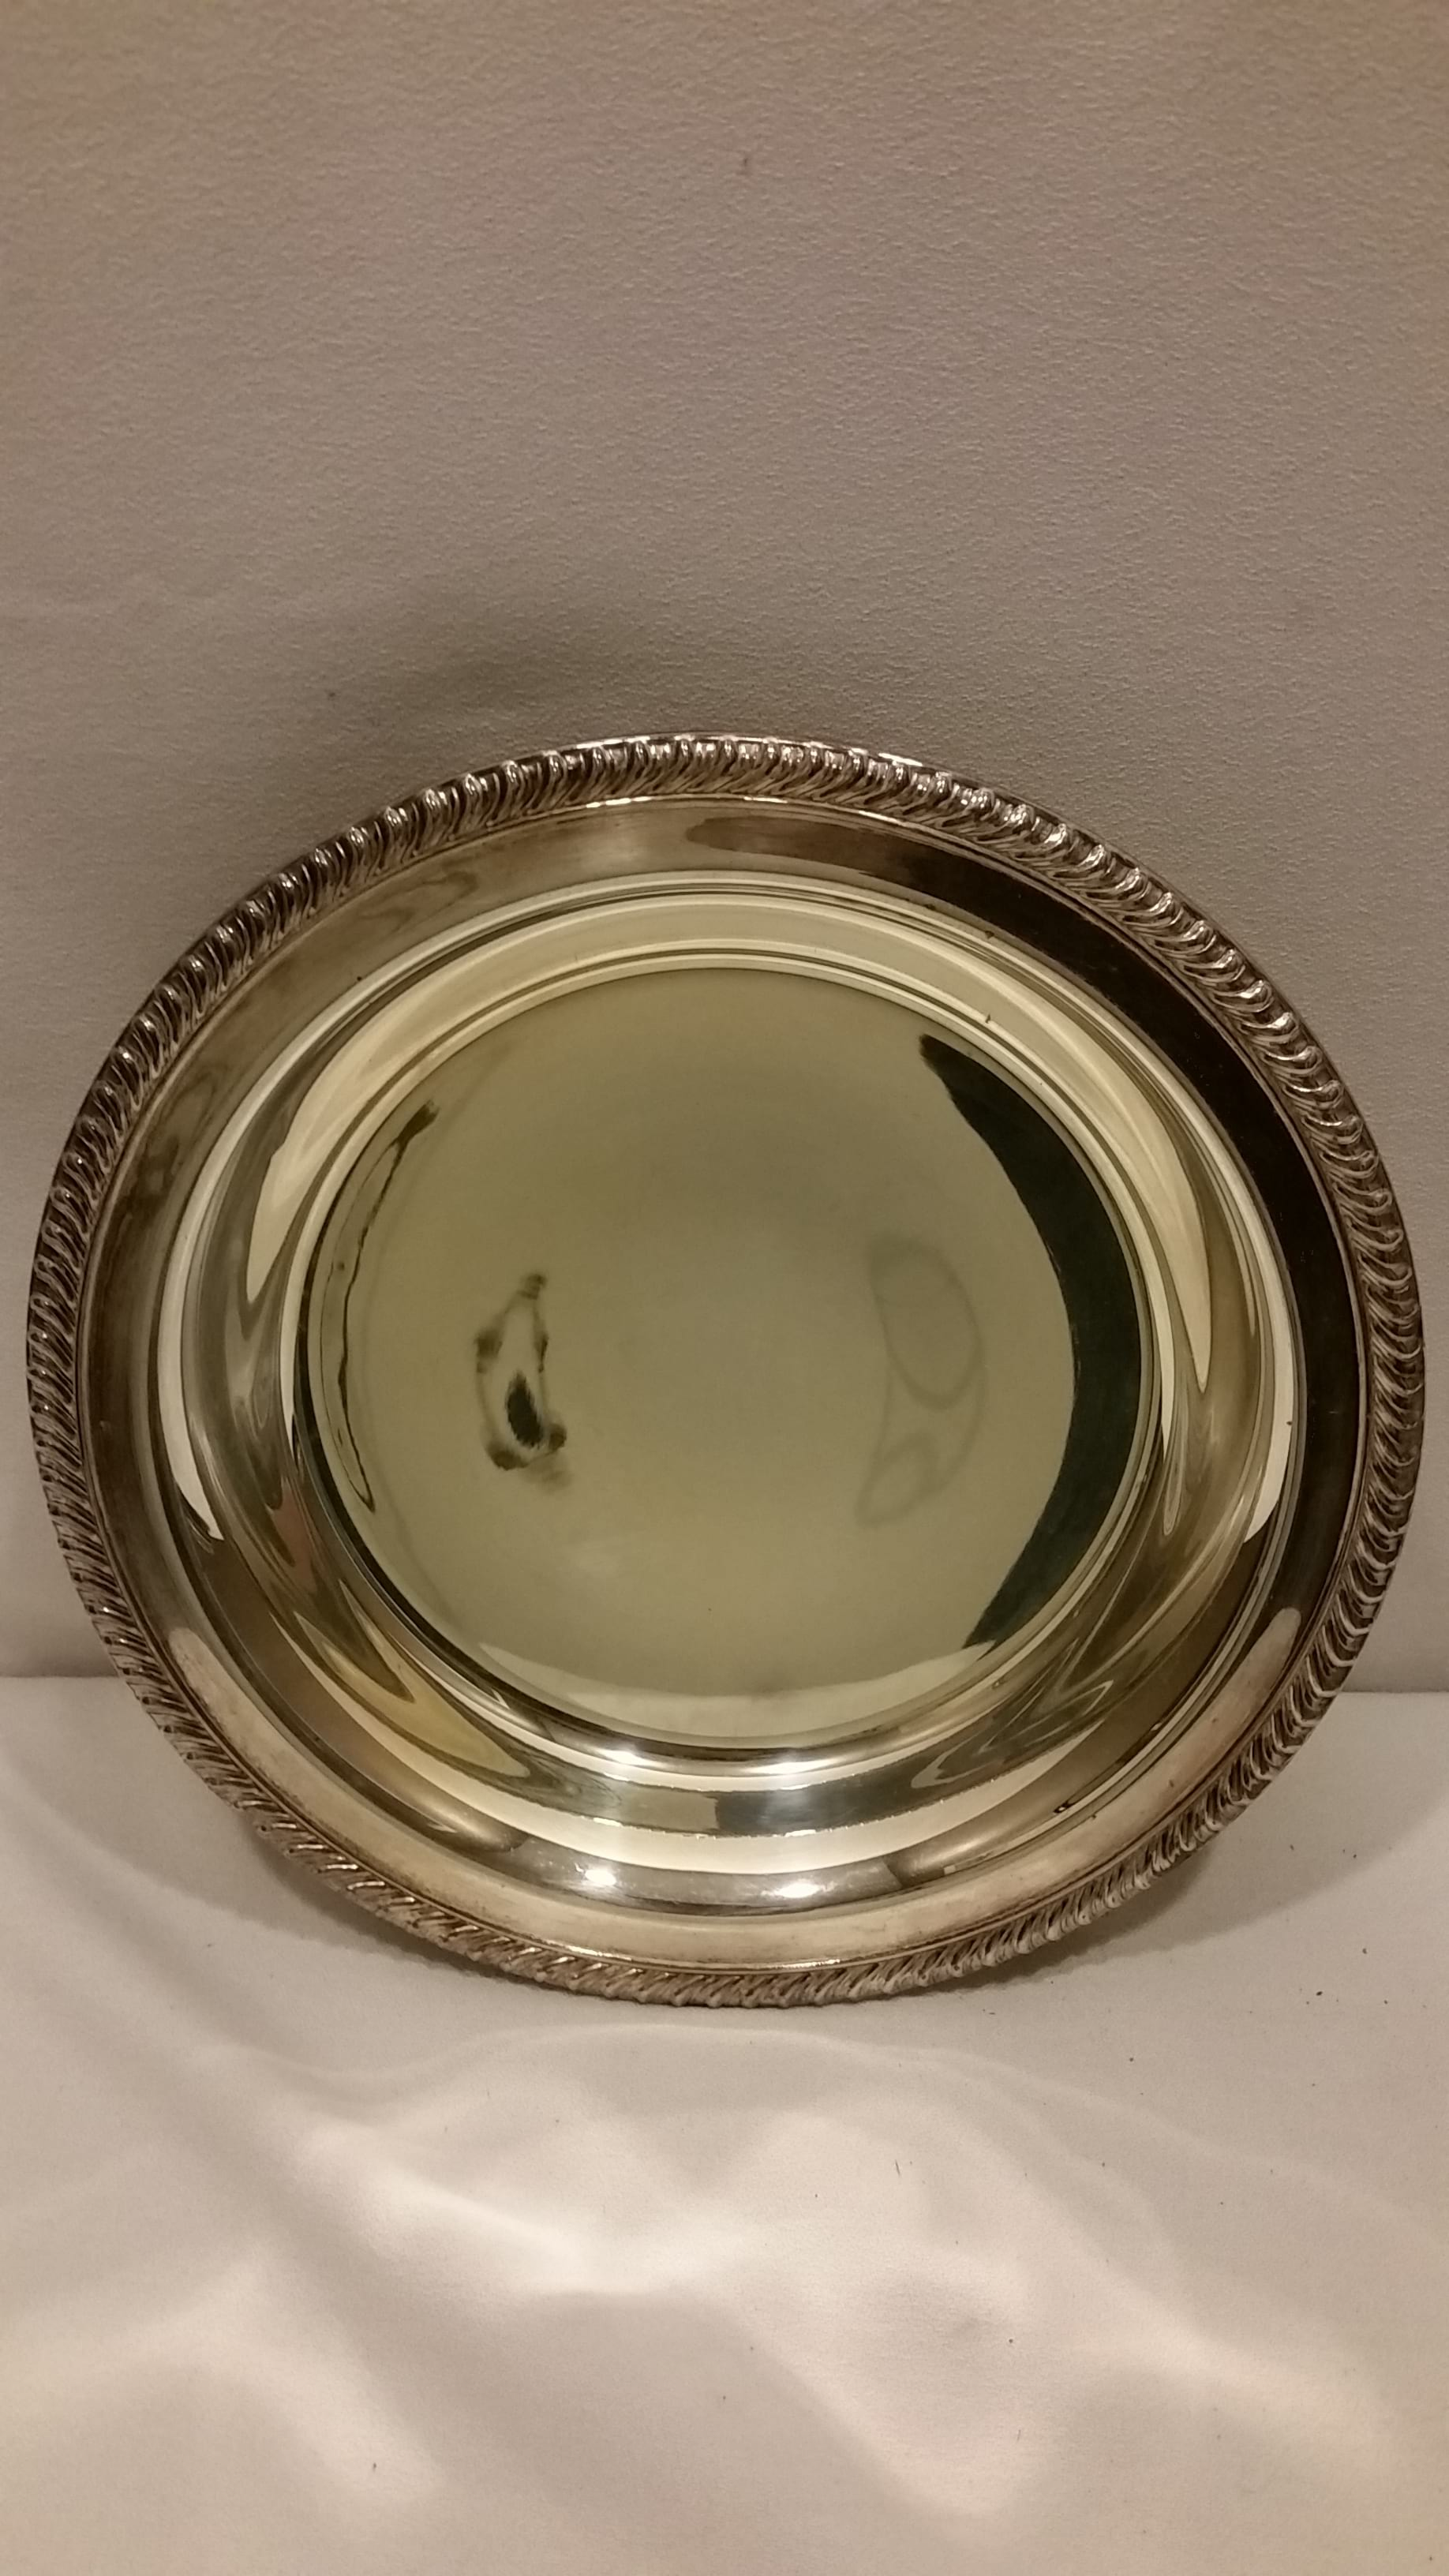 Tray - Silver Round Three Footed Bowl